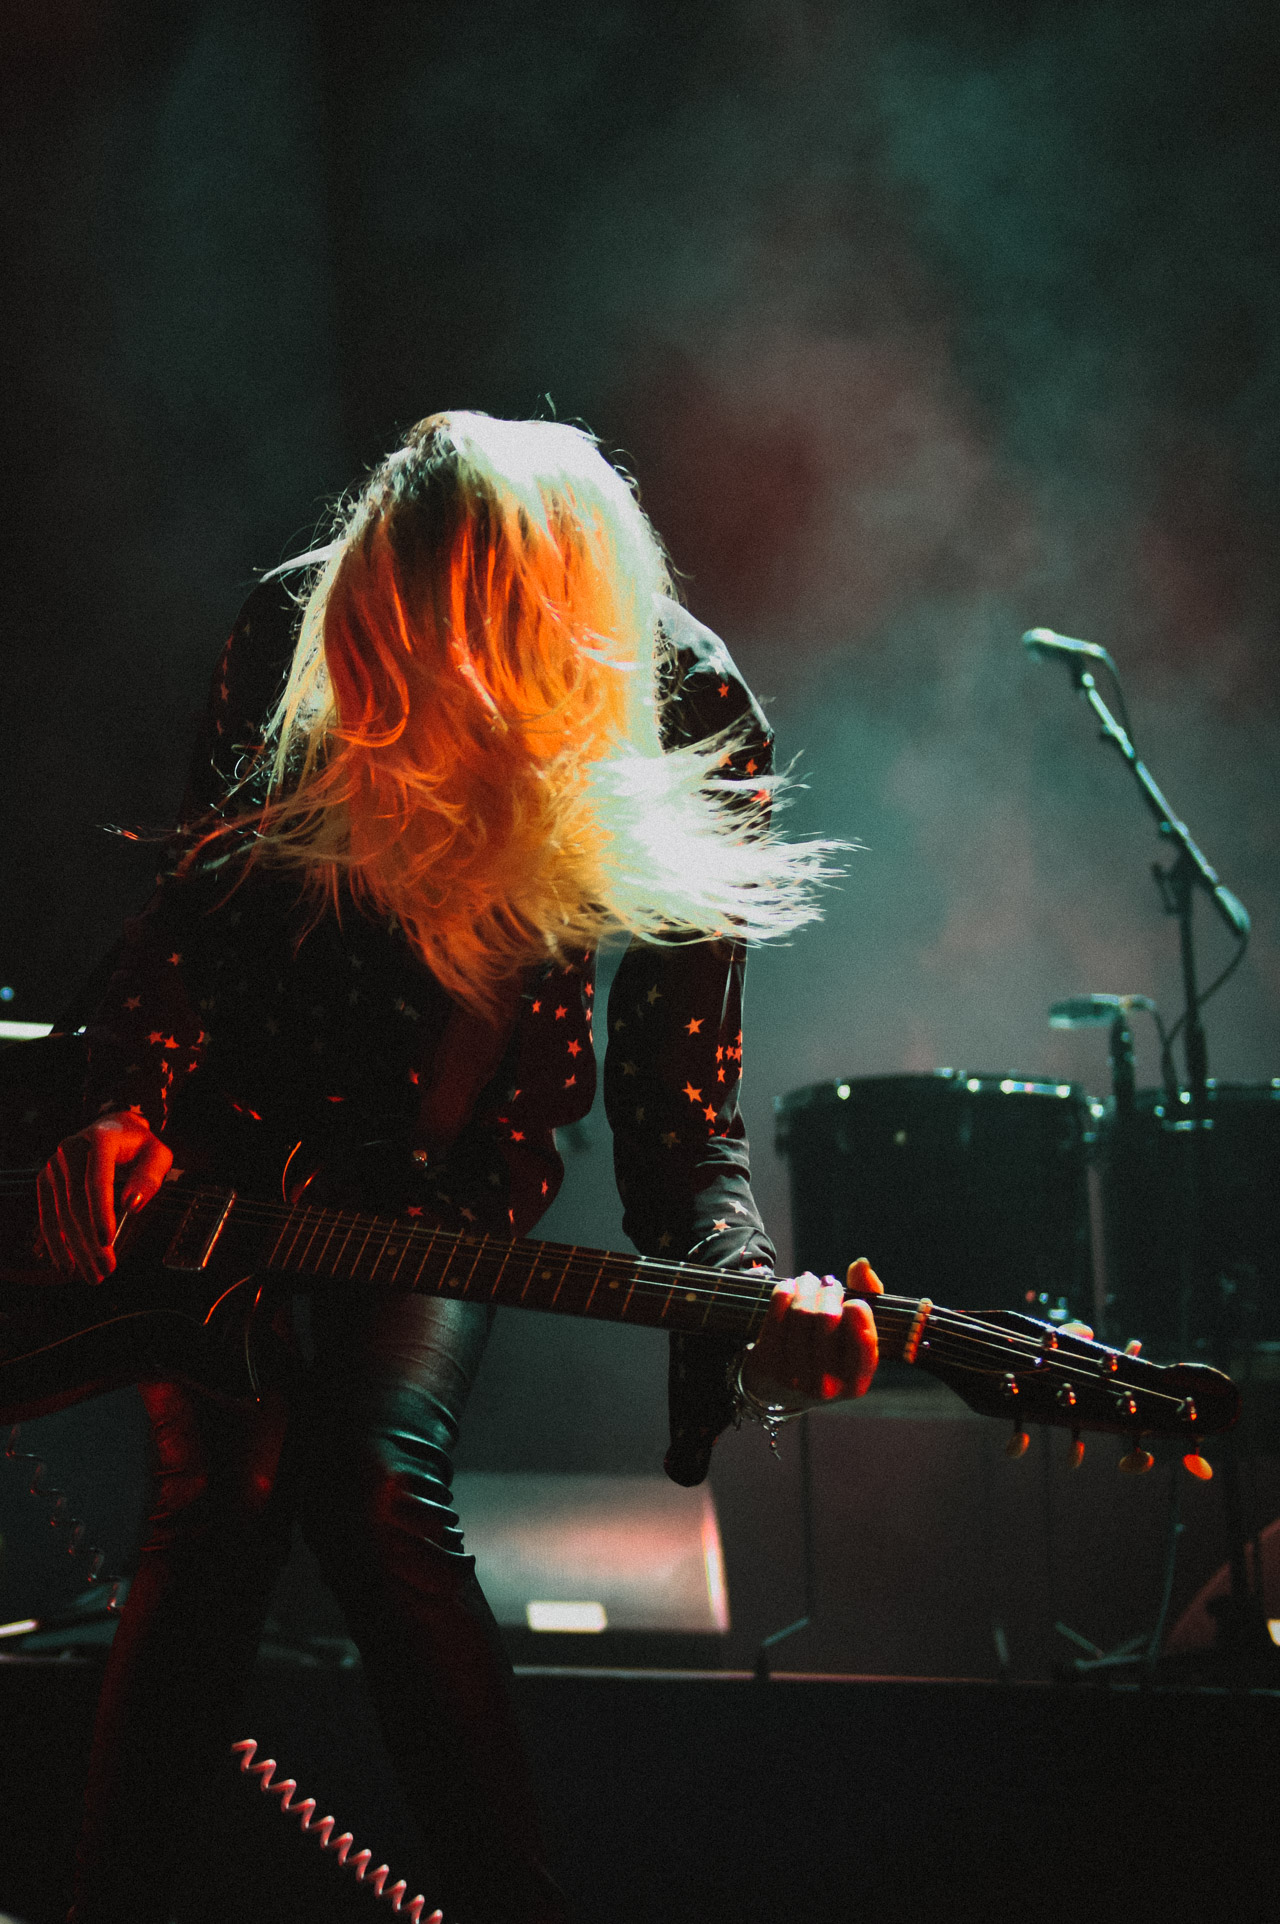 VV The Kills Live in Zürich 2016